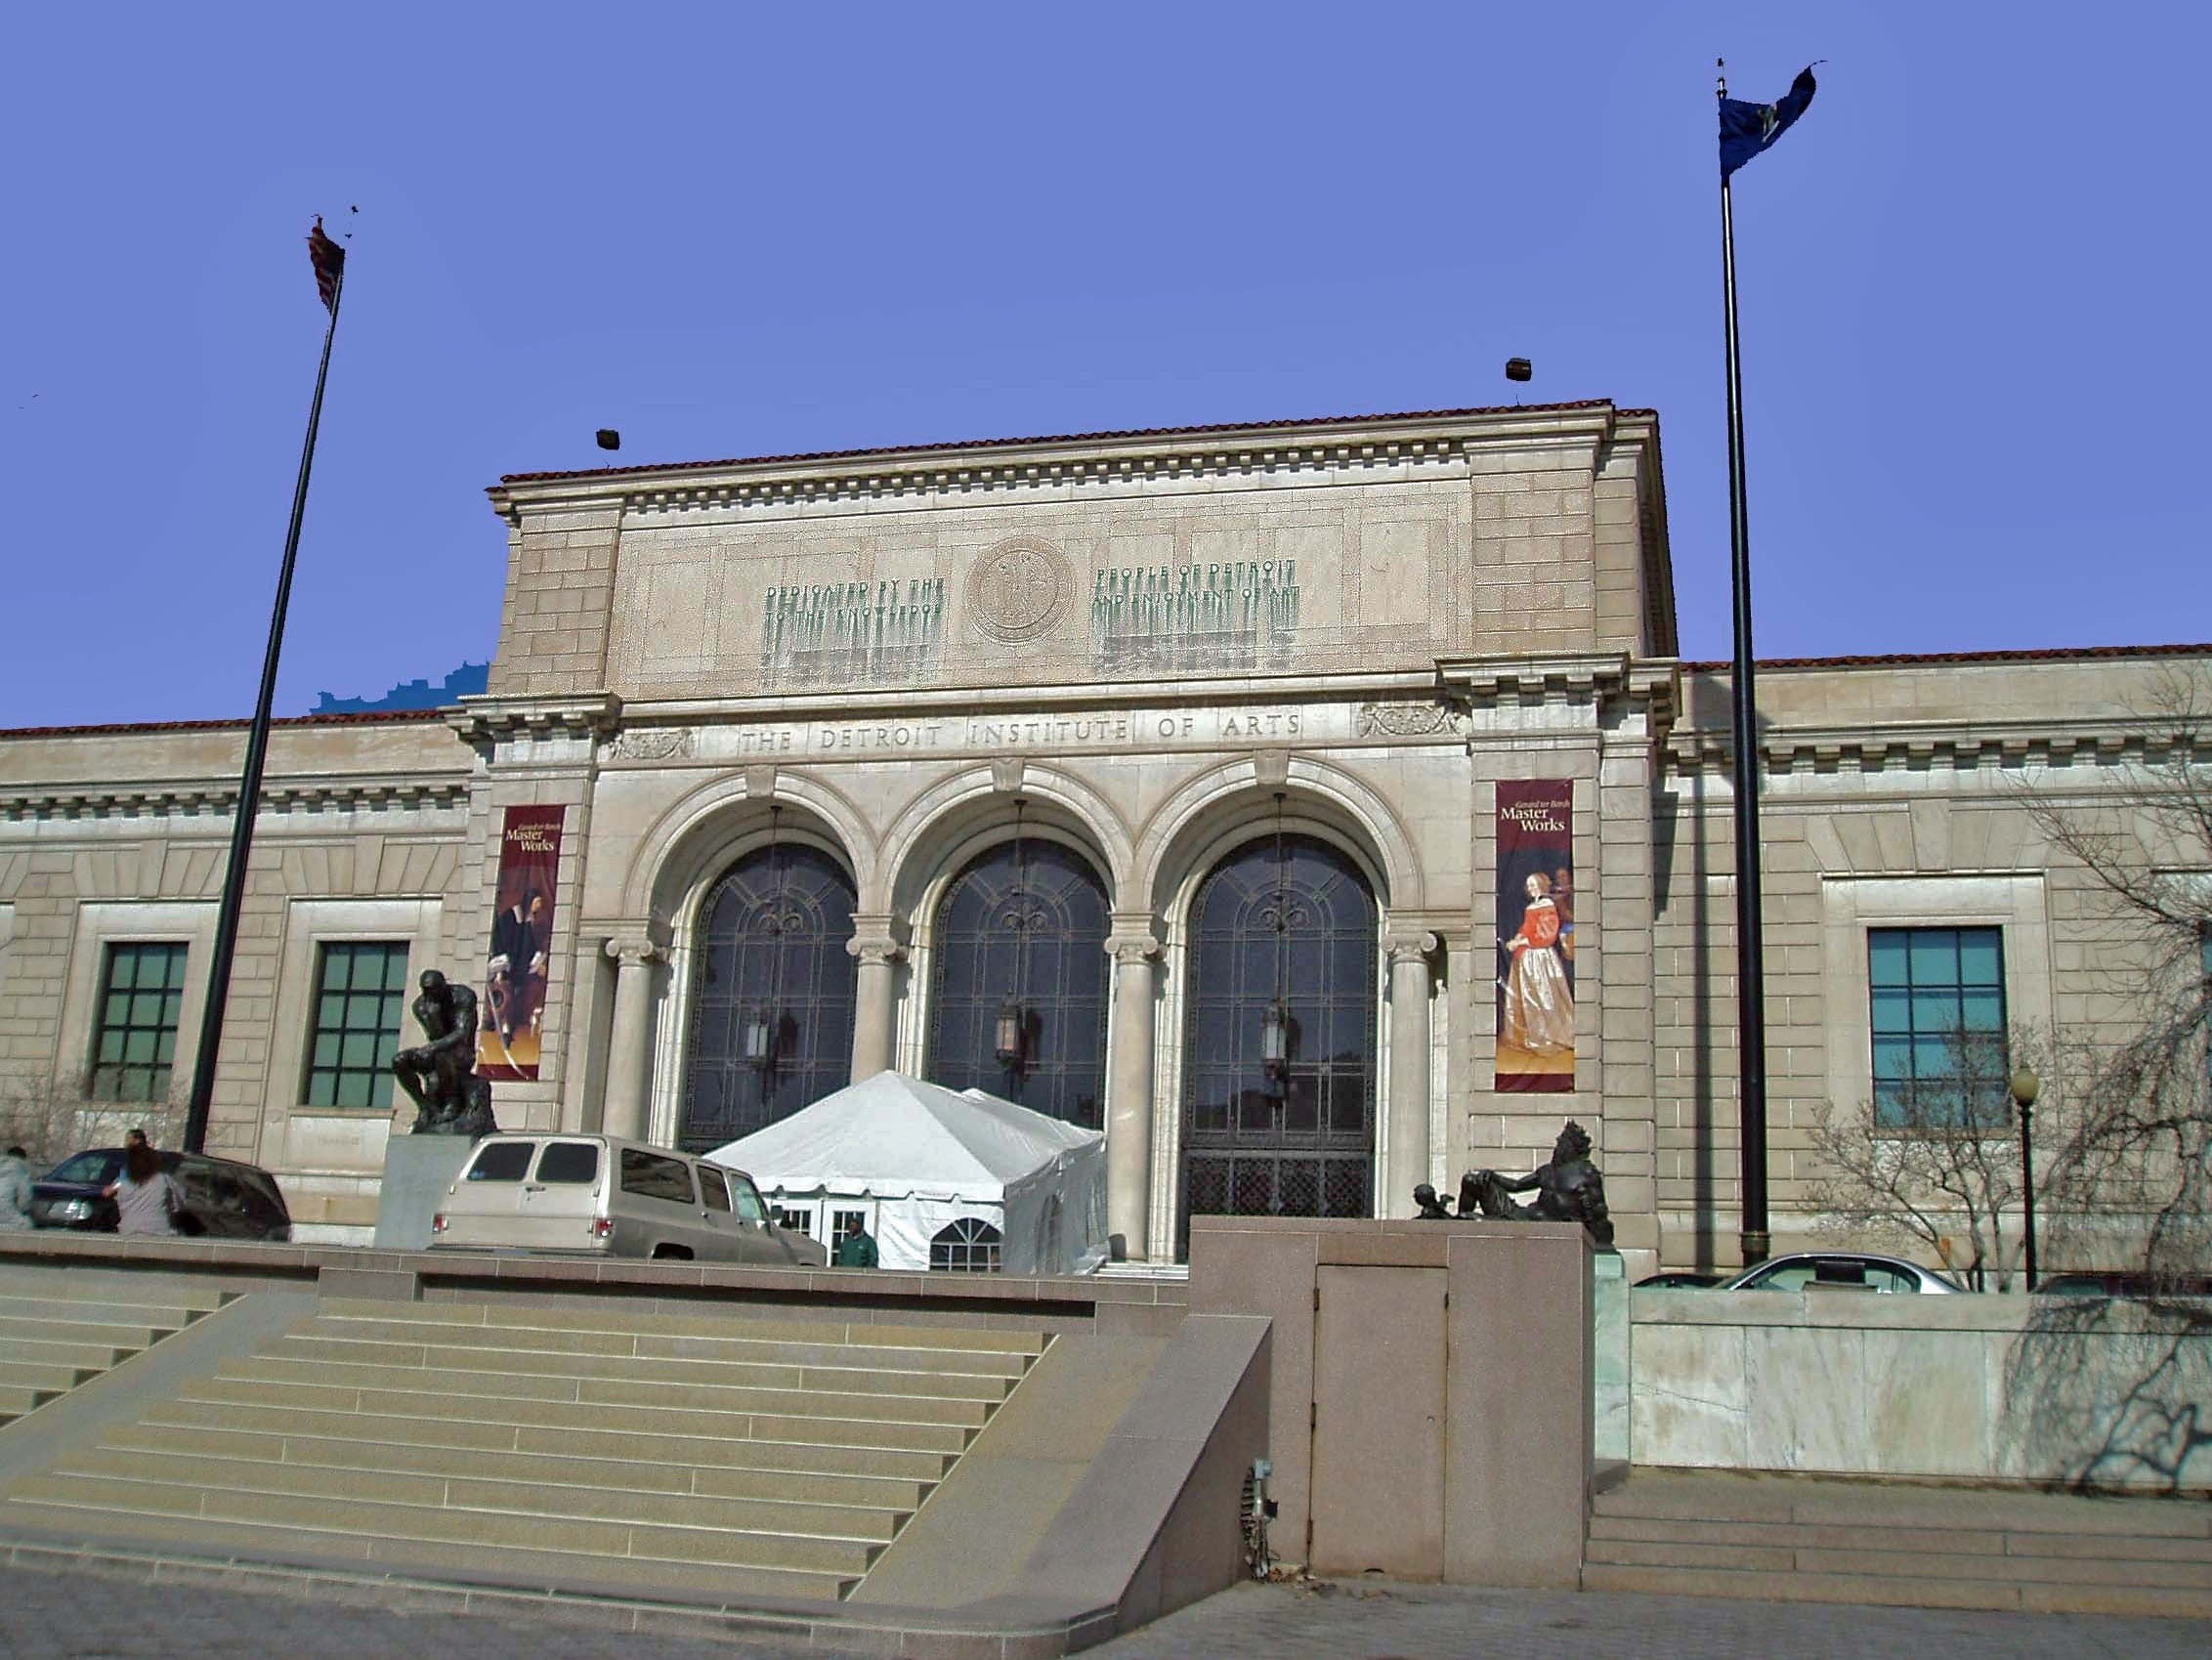 A majority of people living in Detroit's suburbs voted to have their taxes raised to support the Detroit Institute of Arts.